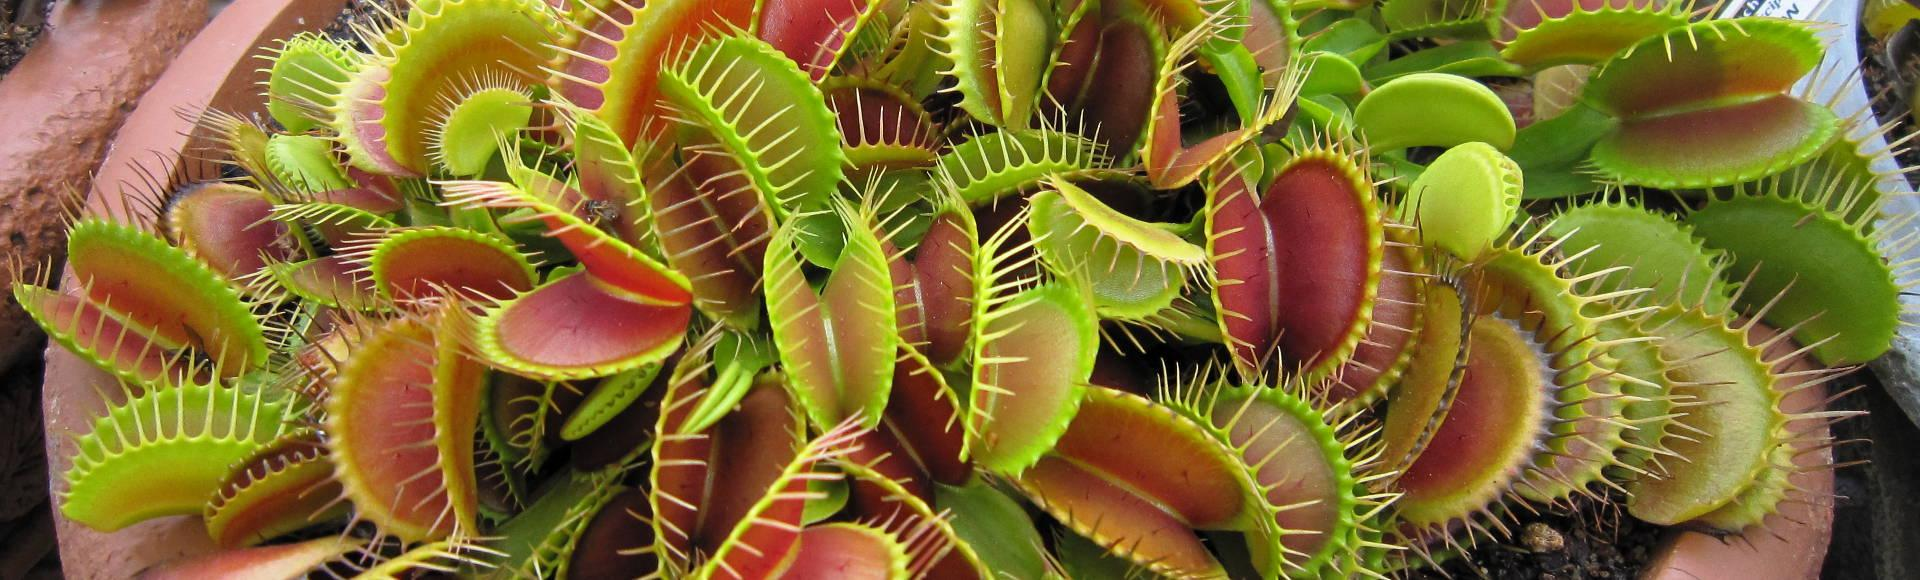 venus fly trap Charles darwin wrote in his 1875 publication, insectivorous plants, that the  venus flytrap is one of the most wonderful [plants] in the world.